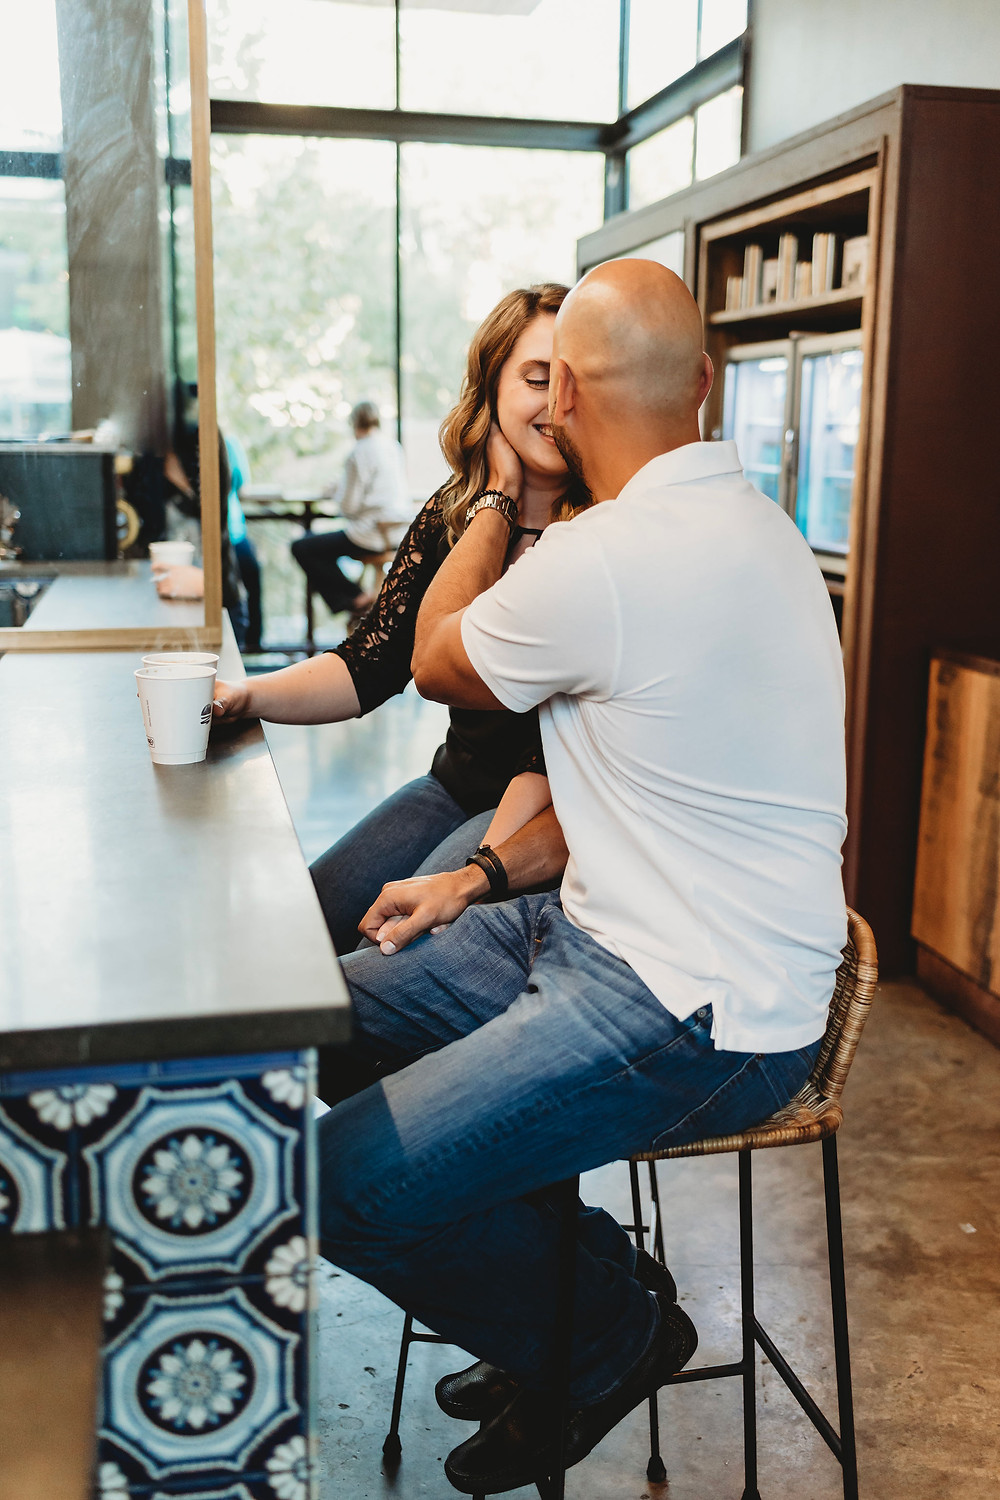 austin coffee house engagement session at Manana on south congress